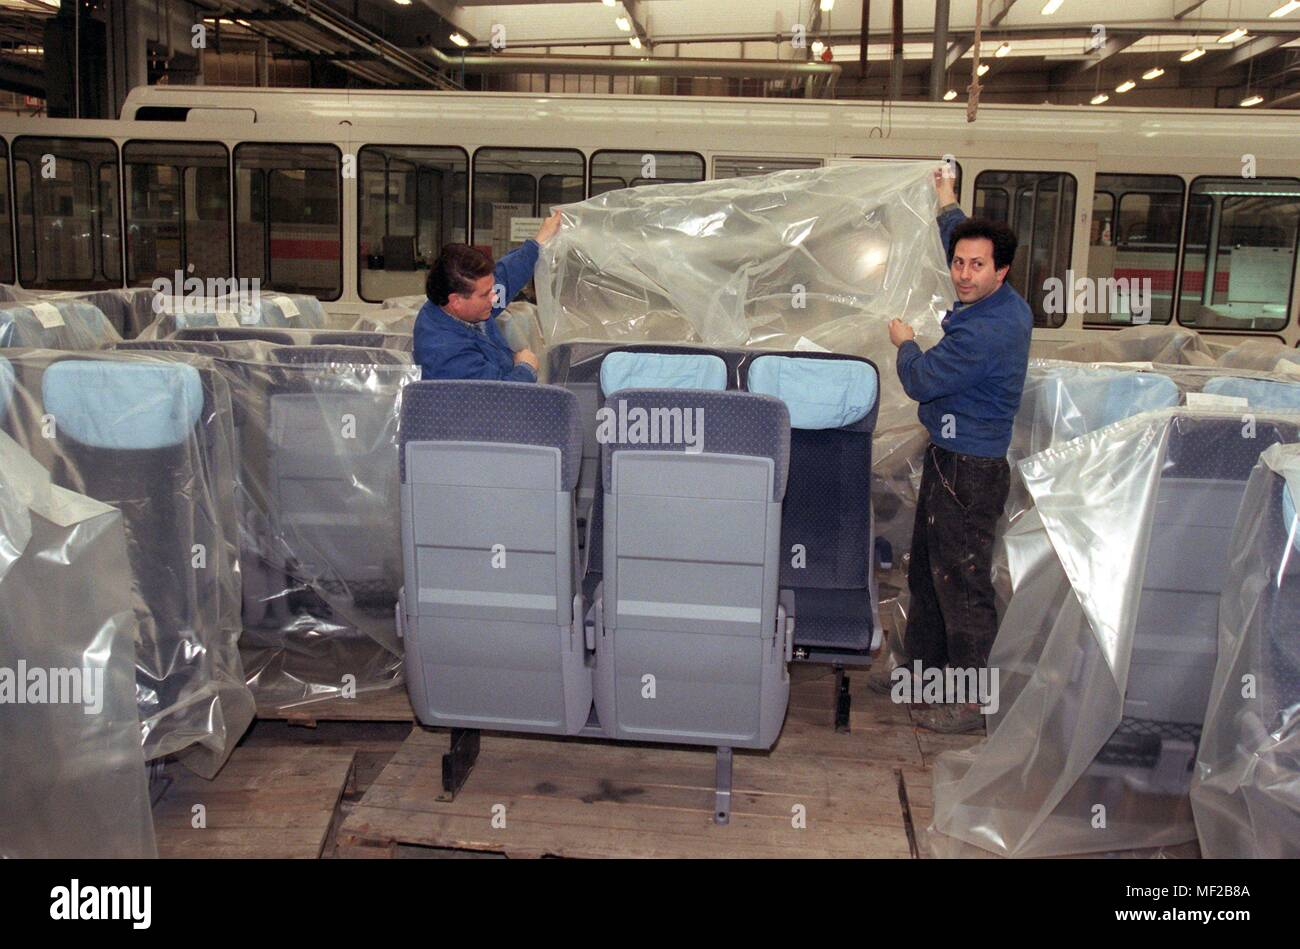 View into a workshop of the company Duewag in Krefeld-Uerdingen, in which 17.3.1998 ICE seats are packed. On 18.3. is celebrating the 100th birthday of the 'Dusseldorf-Uerdinger Wagon Factory' - now part of the Siemens Group. With an order backlog of two billion DM, the Duewag breaks all its own records. Instead of 200 cars so far, 400 railway vehicles 'made in Uerdingen' are to be put on the rails every year. | usage worldwide - Stock Image